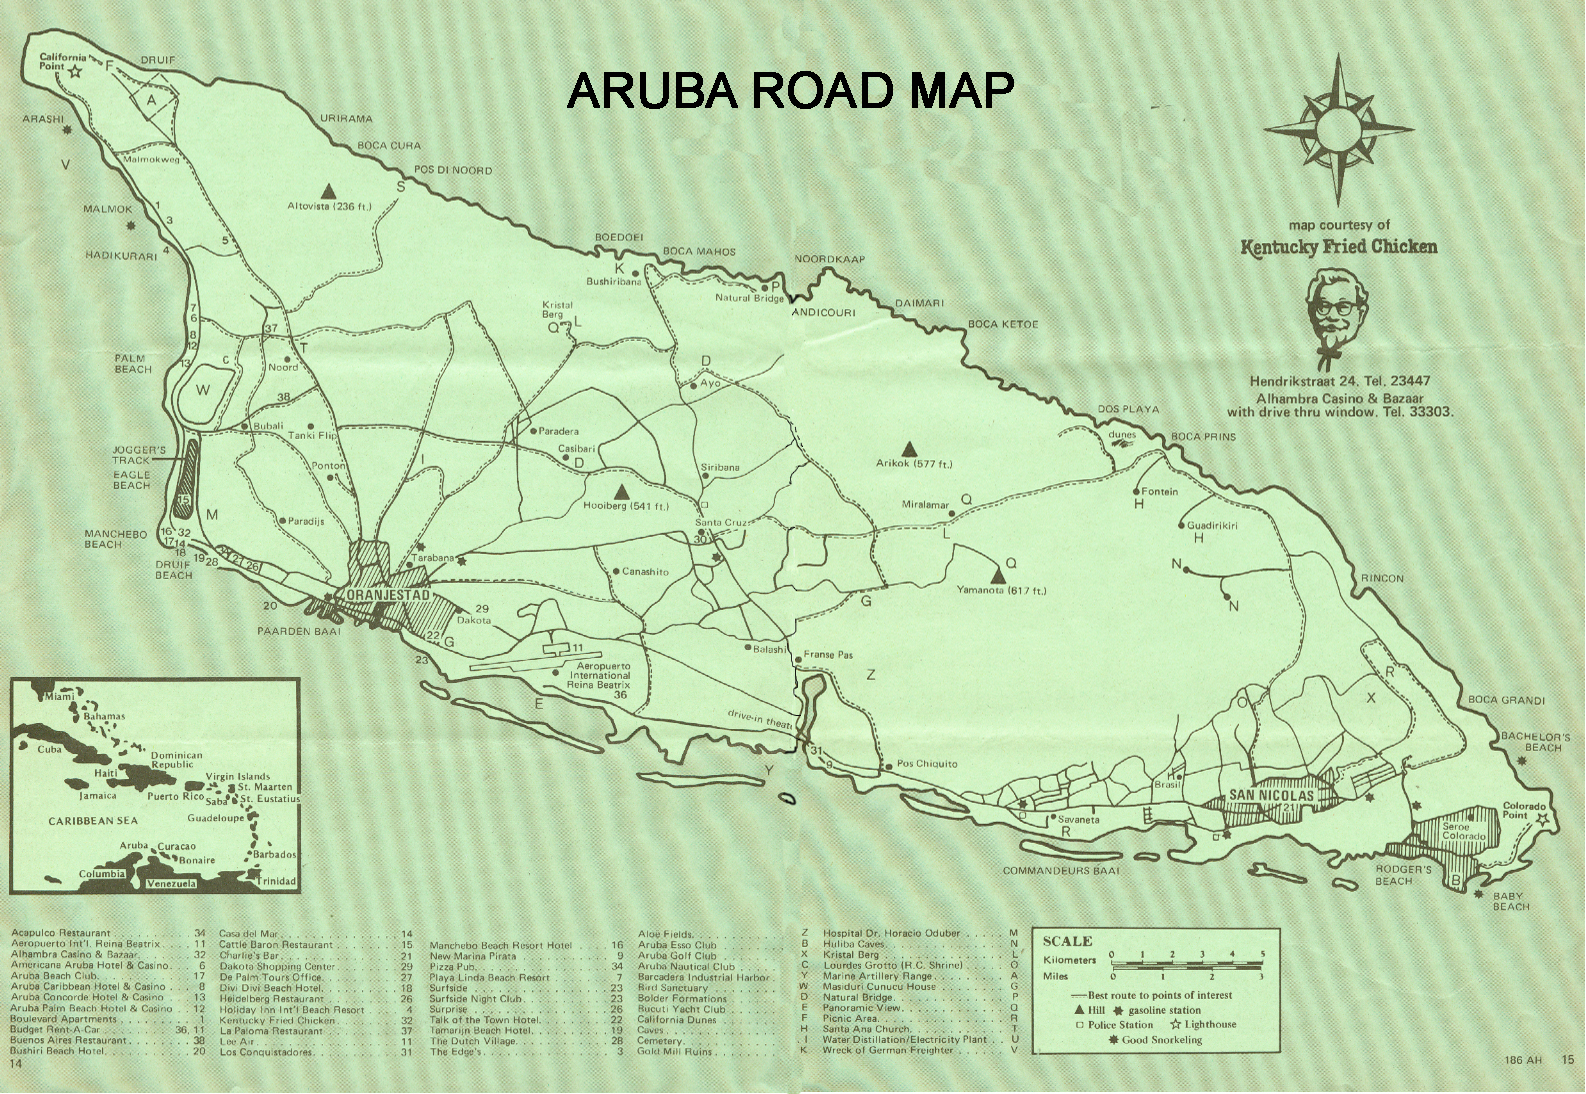 ARUBA ROAD MAP FROM 1989